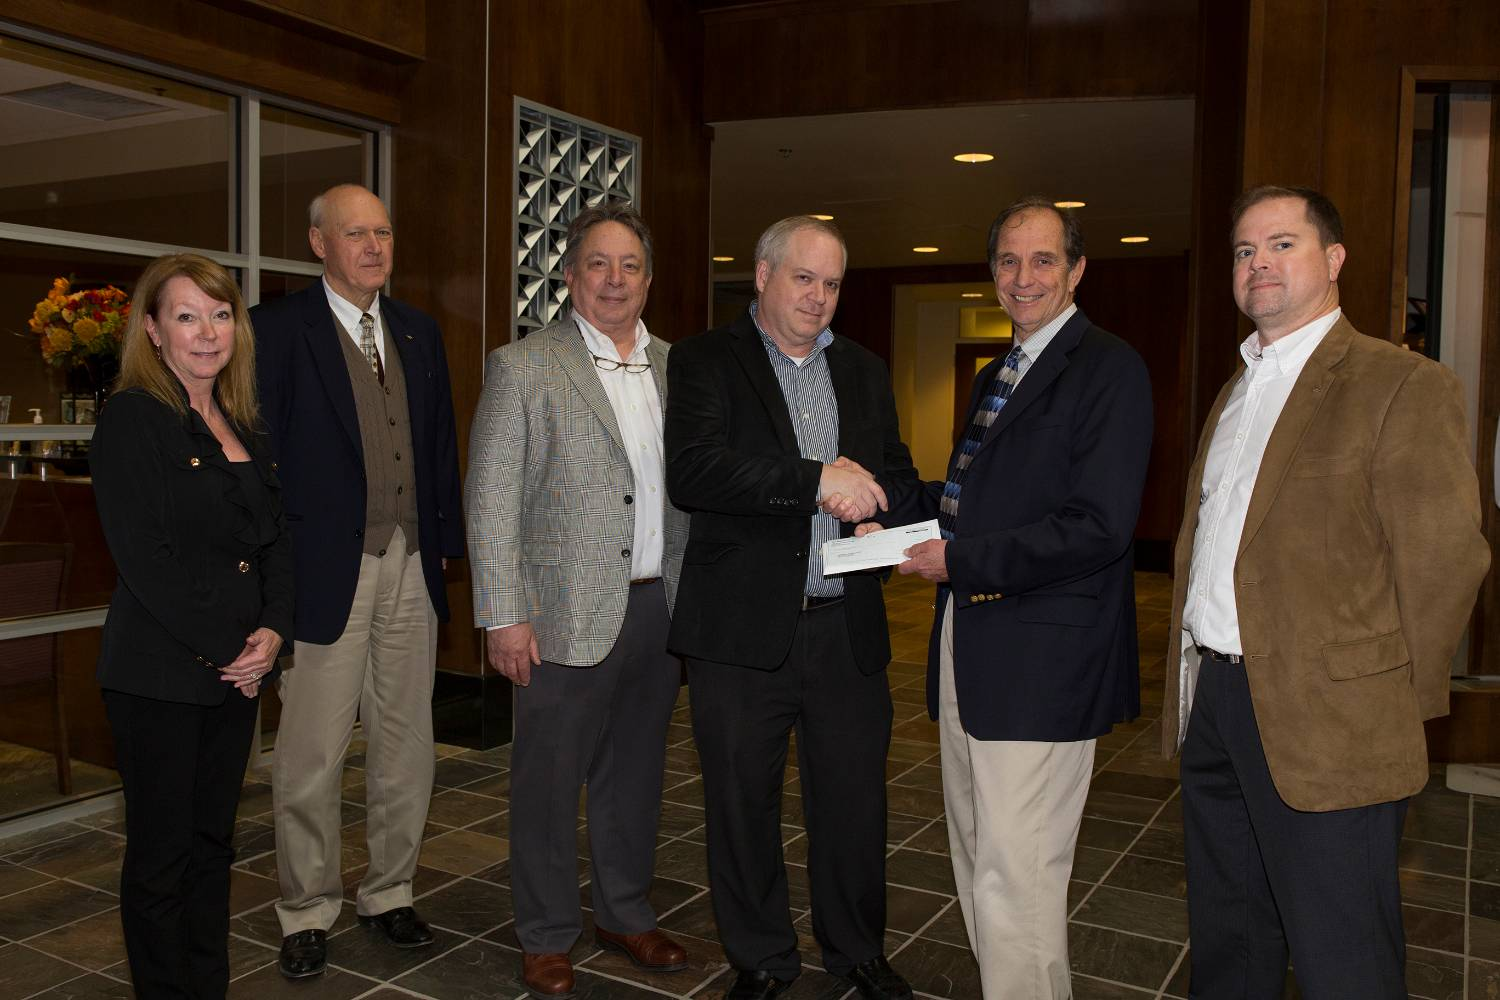 VENTURE TECHNOLOGIES AND CISCO SYSTEMS GIVE SCHOLARSHIP DONATION